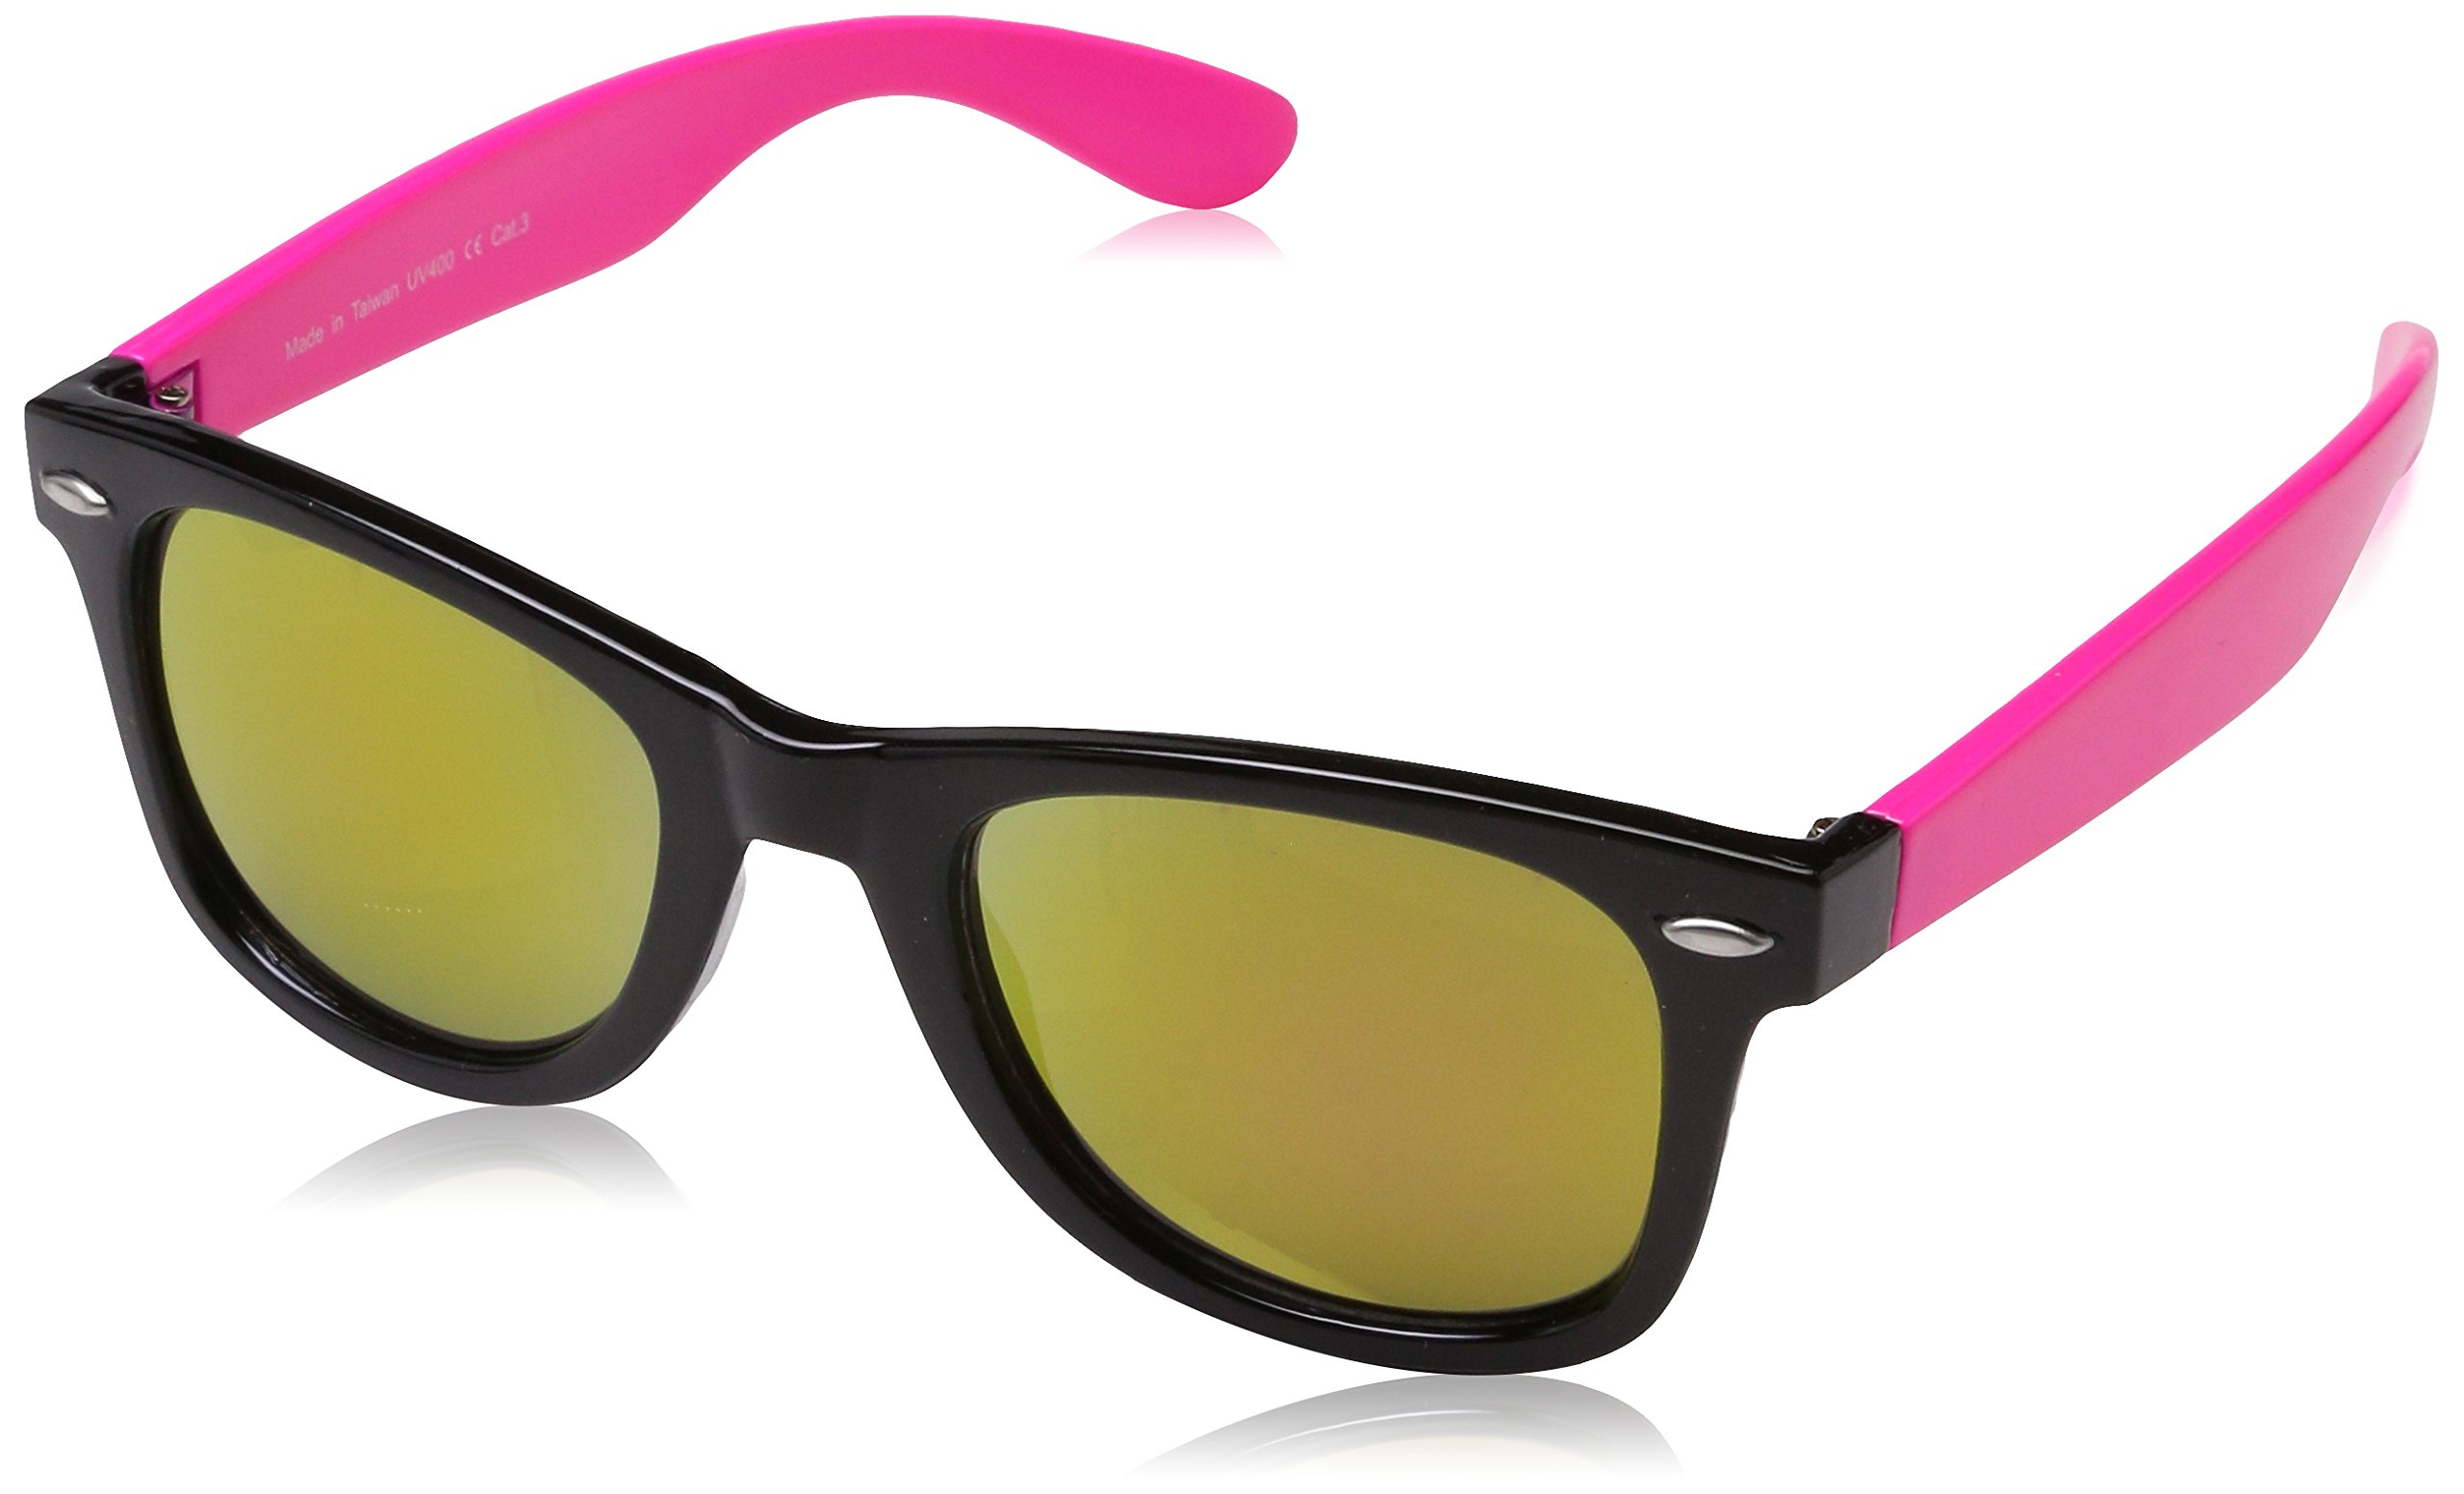 Real Shades Swag Sunglasses for Adults - 100% UVA UVB Protection, Polycarbonate Mirror Lenses, Unbreakable, Iconic 80s Style (Black/Neon Pink, Pink Mirror Lens)